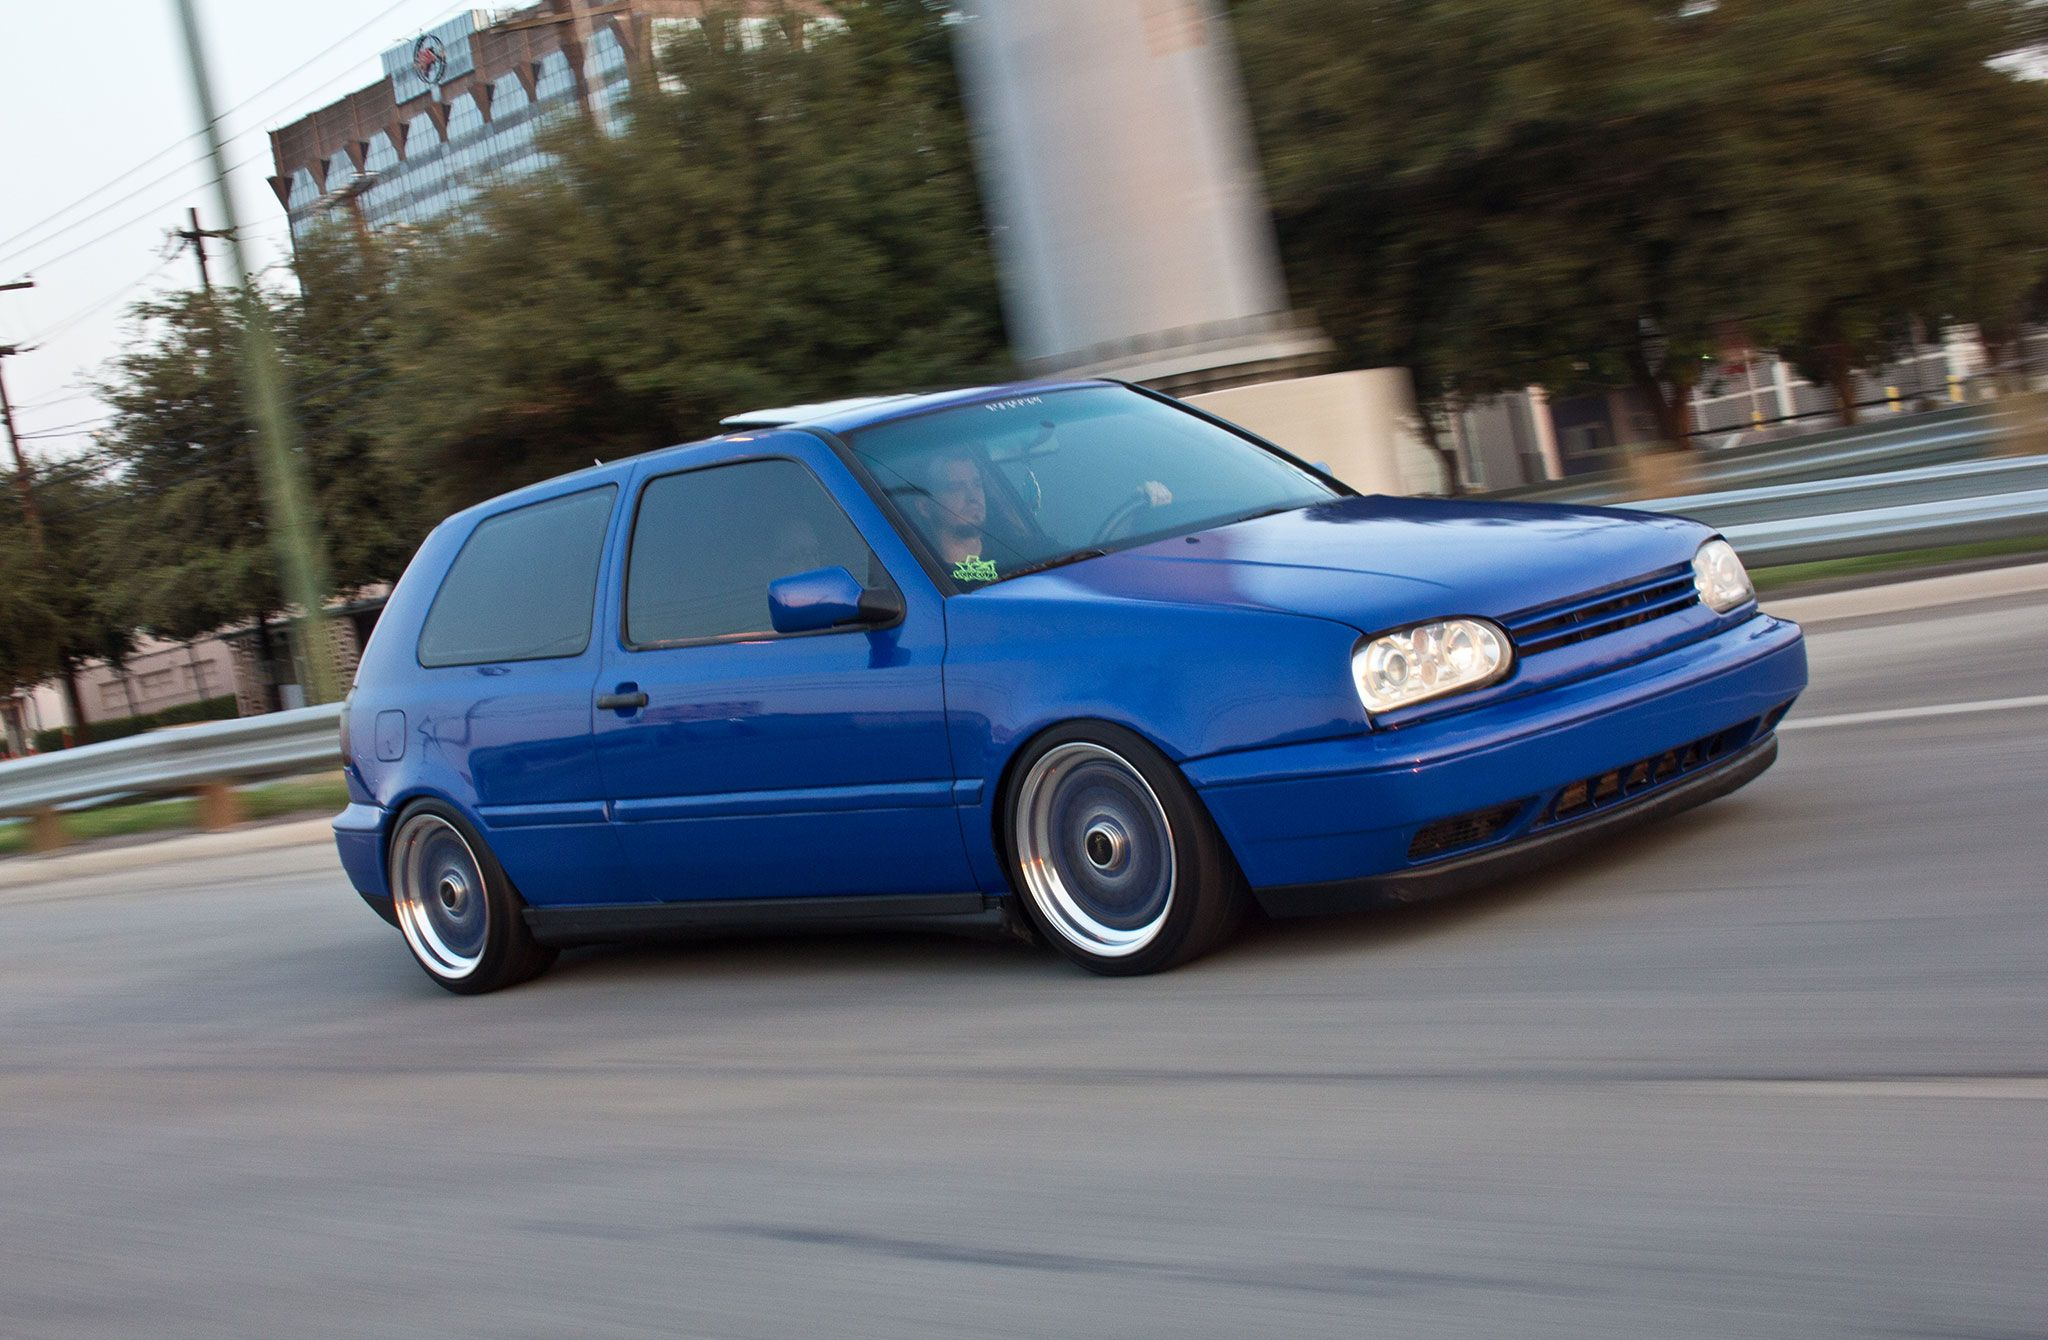 Volkswagen vr6 photo - 1